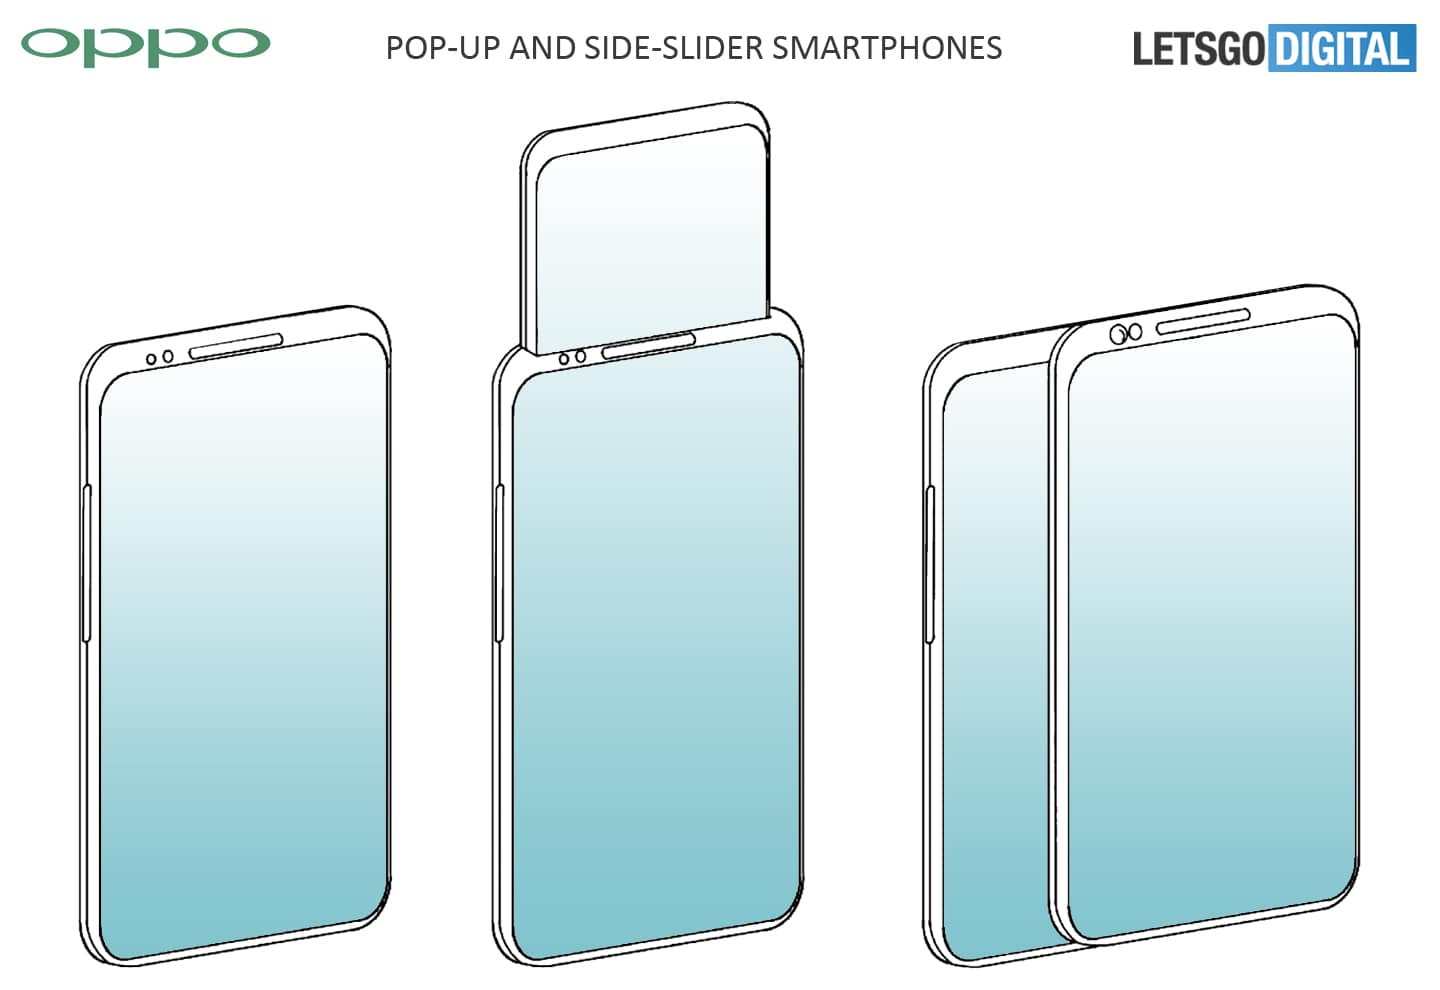 Oppo showed an unusual patent for a smartphone